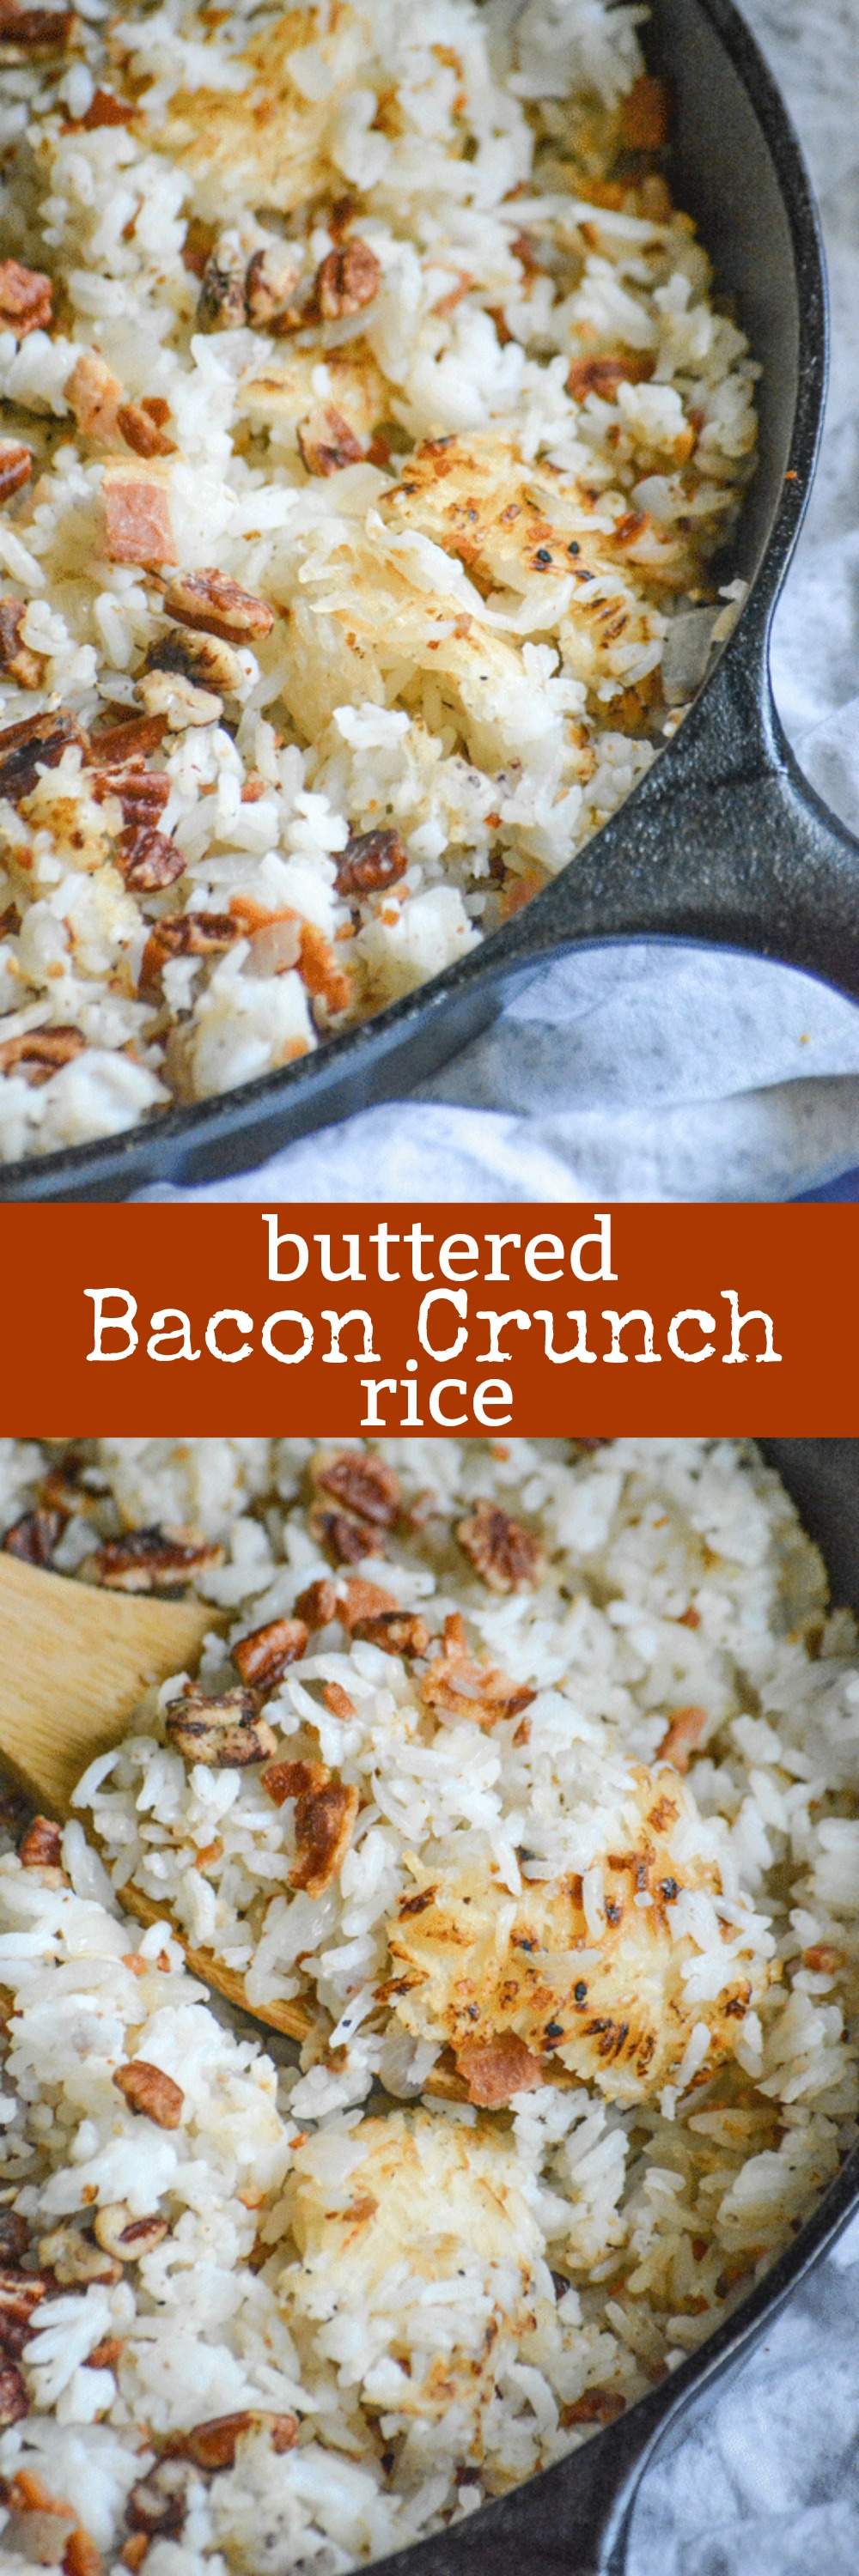 If you thought you loved rice before, get ready to fall in love with it all over again in this Buttered Bacon Crunch Rice version. Crispy golden browned bits of rice are stirred with regular fluffy white bits, savory bacon, and topped with a delightful pecan crunch. It's a simple Southern side dish wonderland!